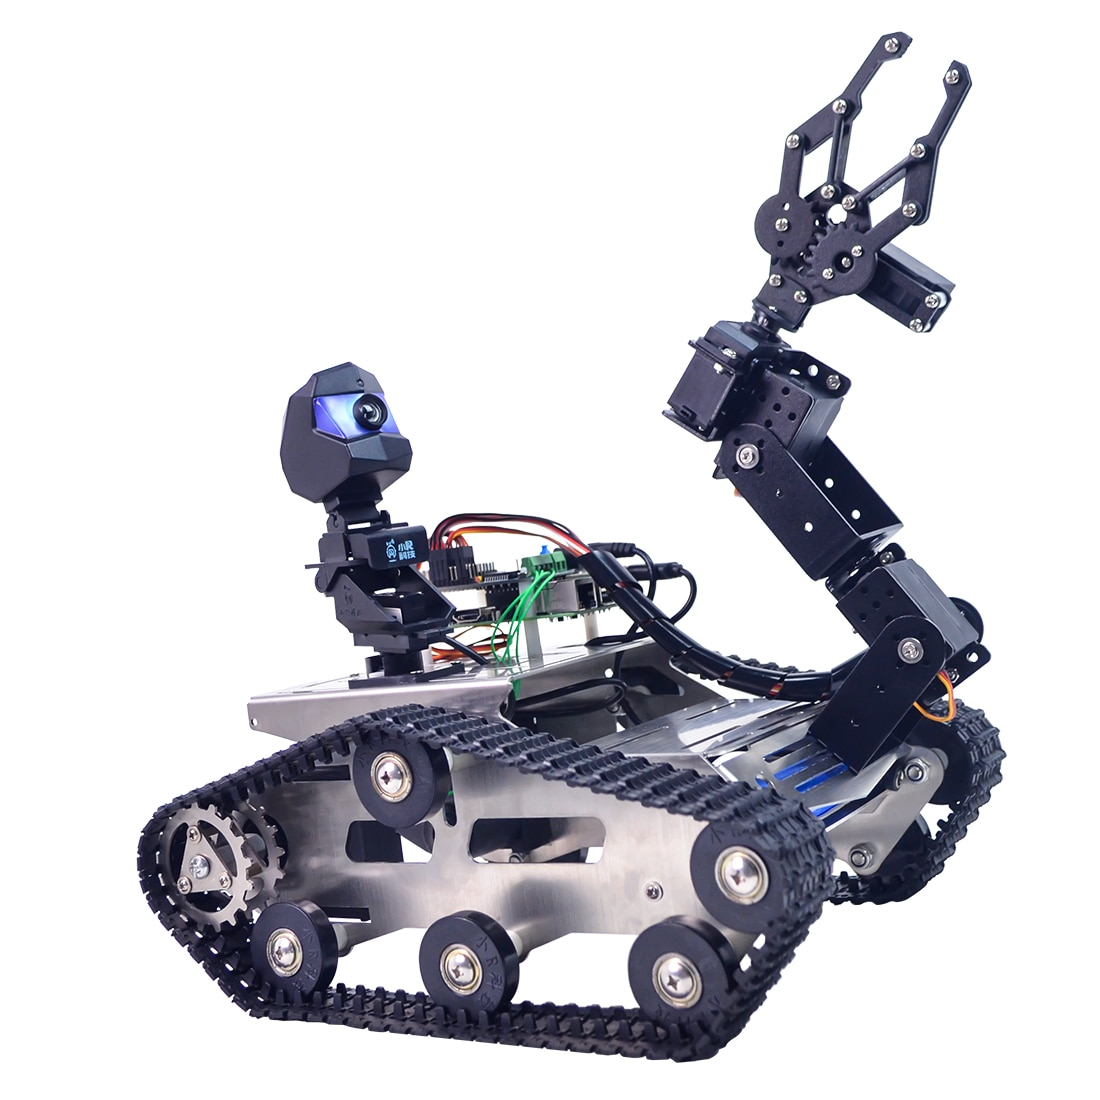 New Programmable TH WiFi FPV Tank Robot Car with Arm for Arduino MEGA - Standard Version/Avoidance V